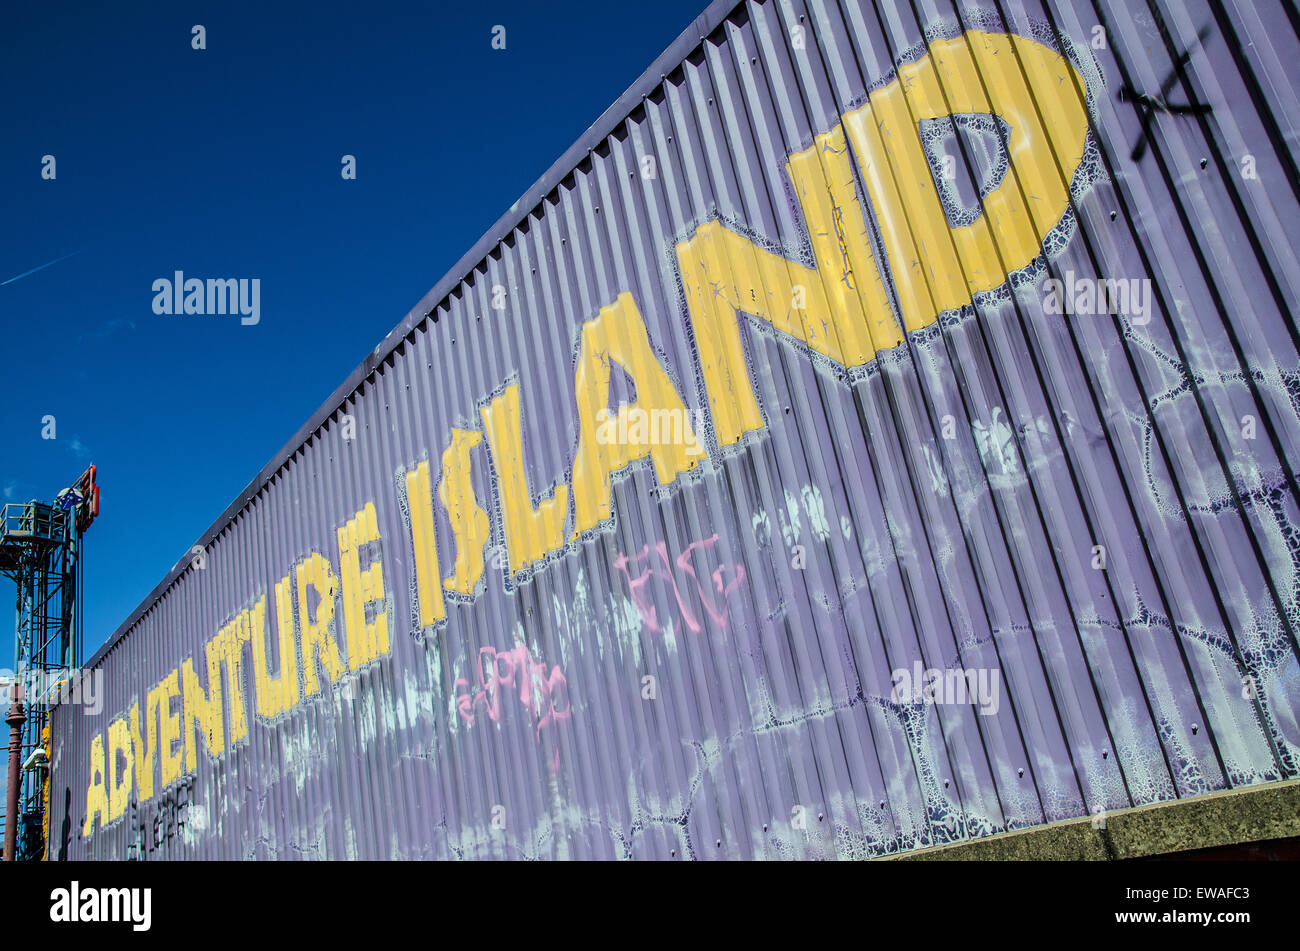 The rear of Adventure Island, Southend, with a weathered and rough sign on corrugated steel. Space for copy - Stock Image